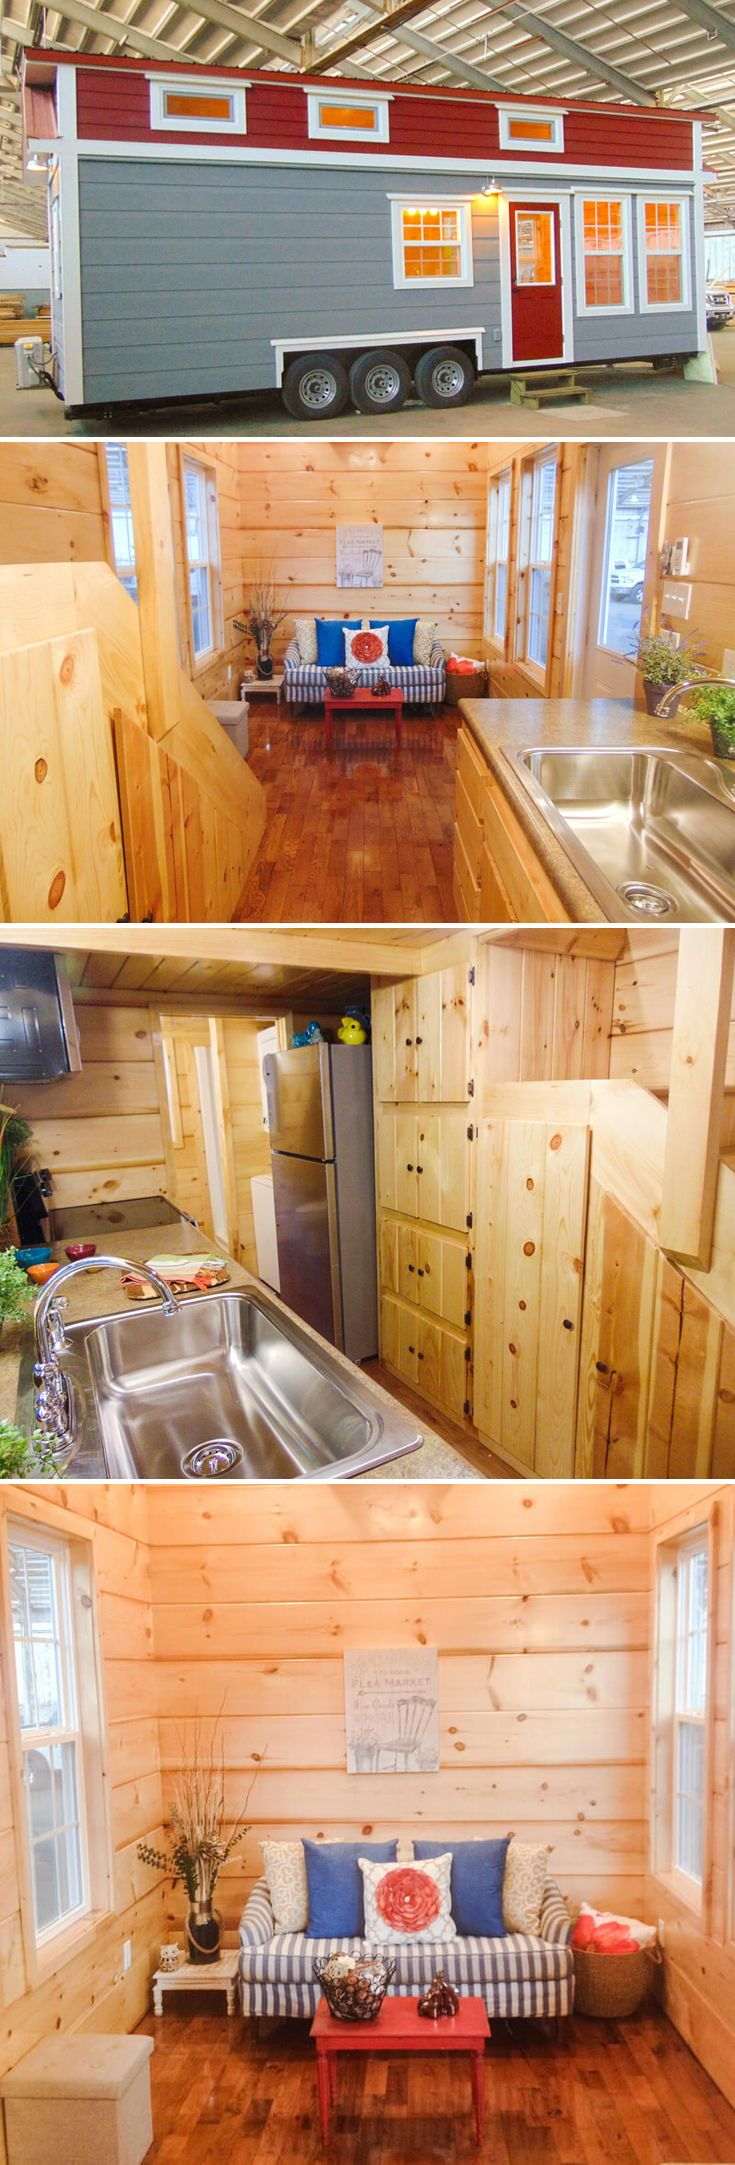 french quarter by incredible tiny homes tiny houses tiny house rh pinterest com